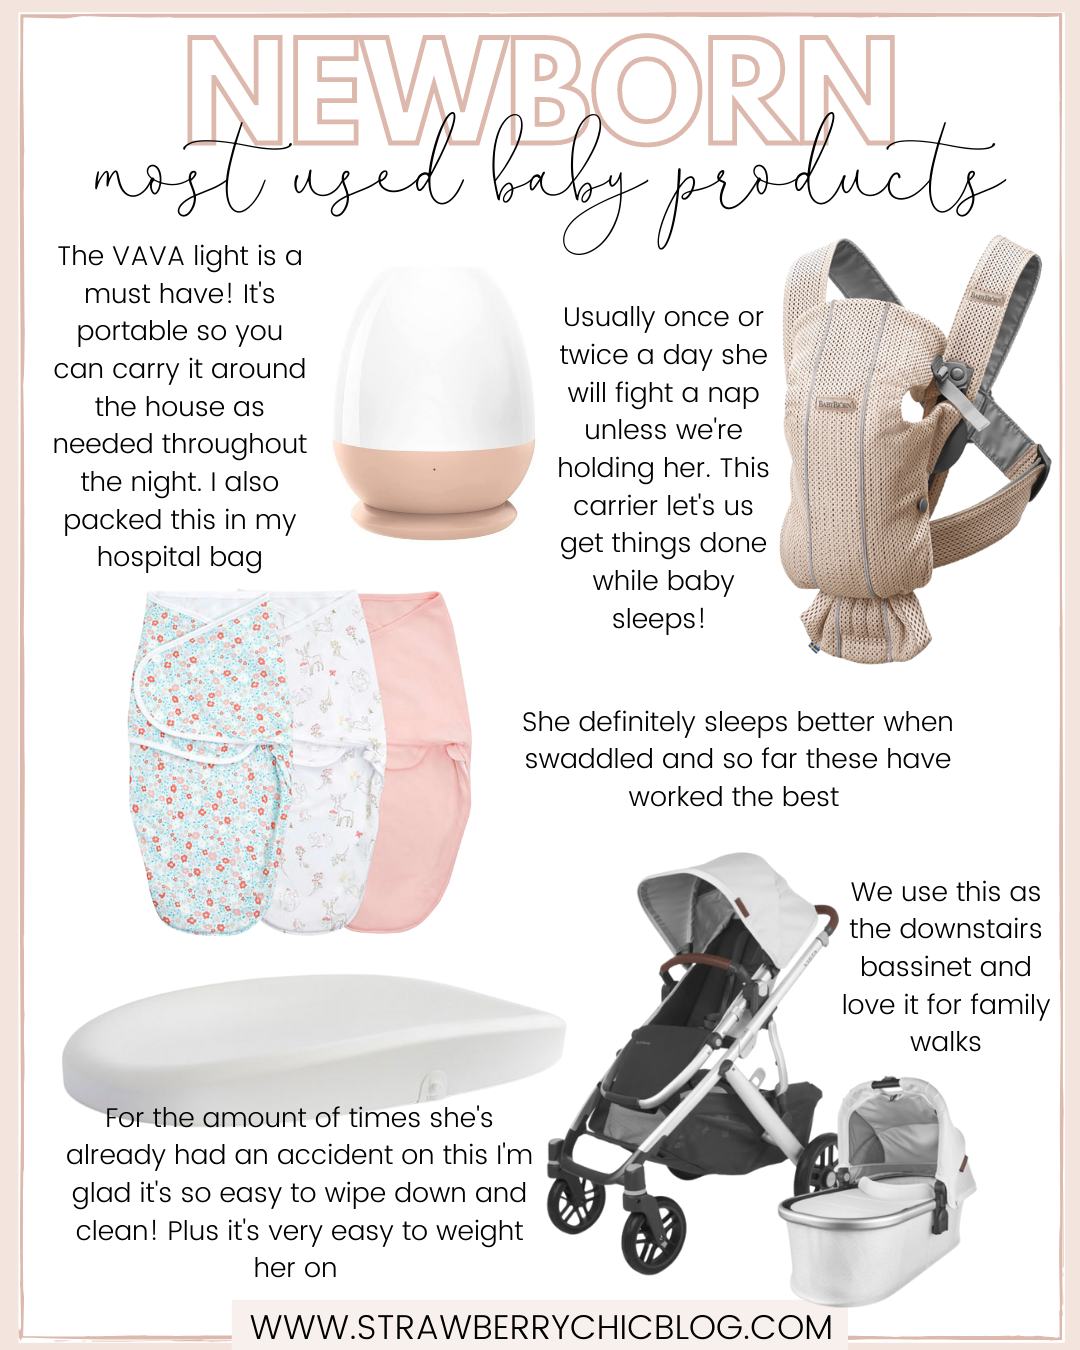 Newborn most-used products